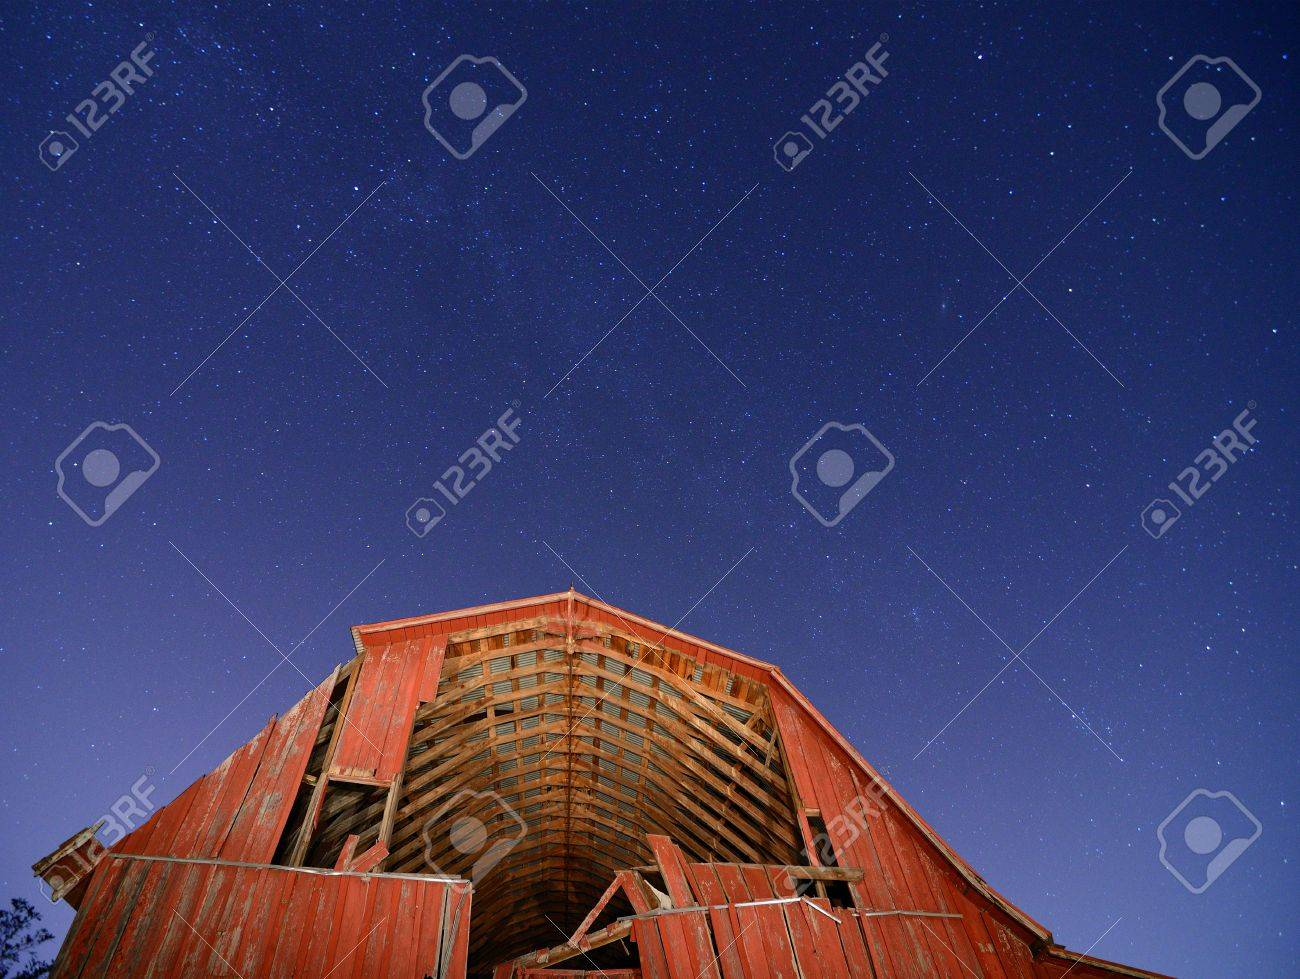 Abandoned barn with the milkyway overhead. Stock Photo - 10930374